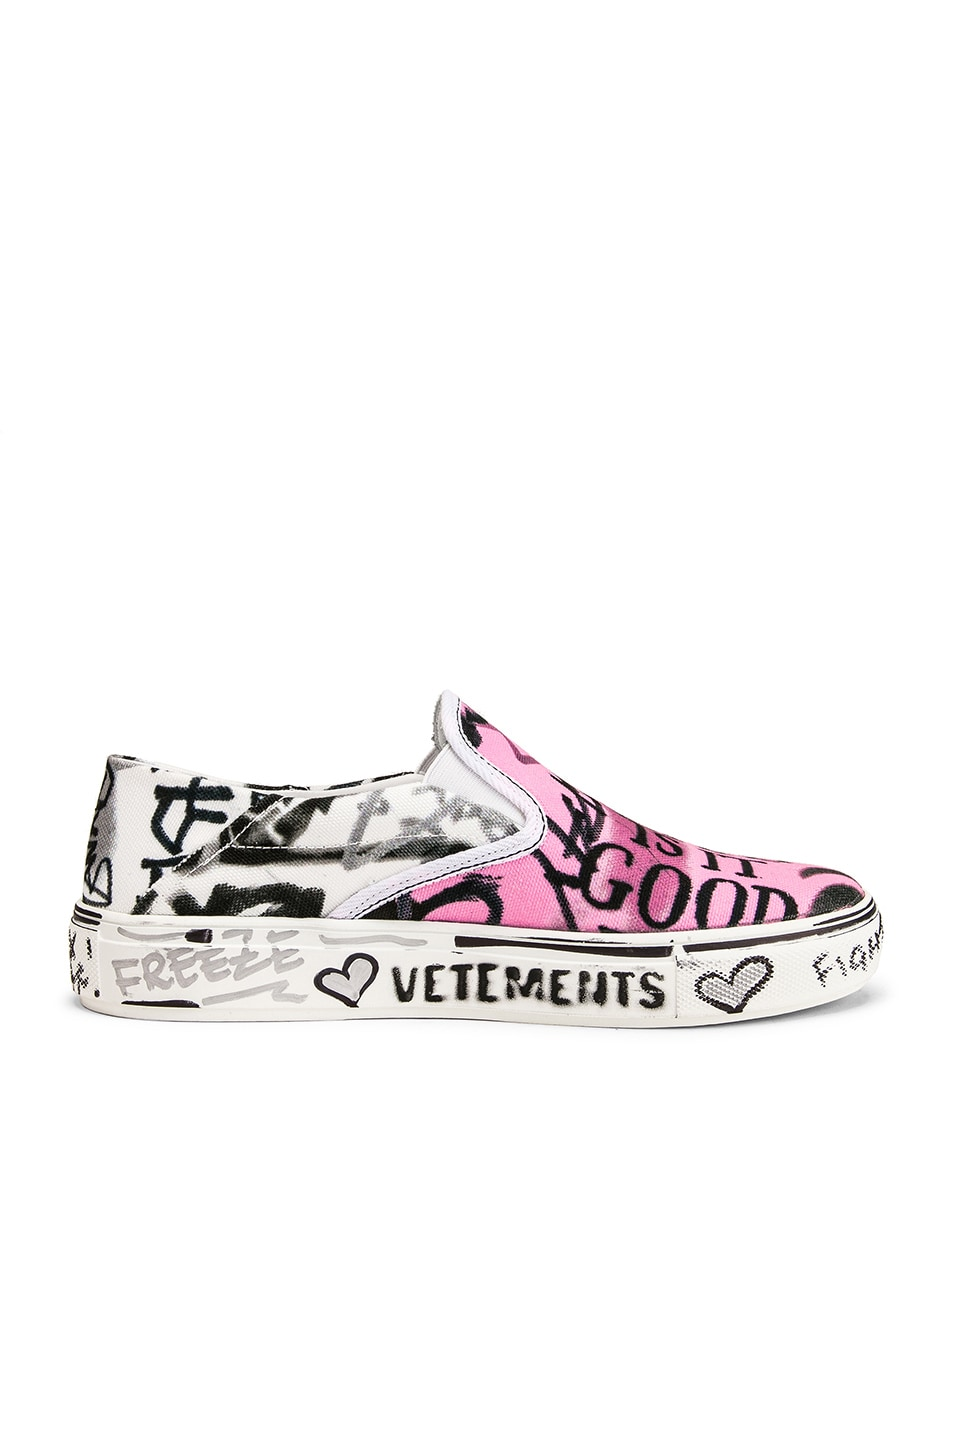 Image 7 of VETEMENTS Graffiti Slip On Sneakers in White & Pink